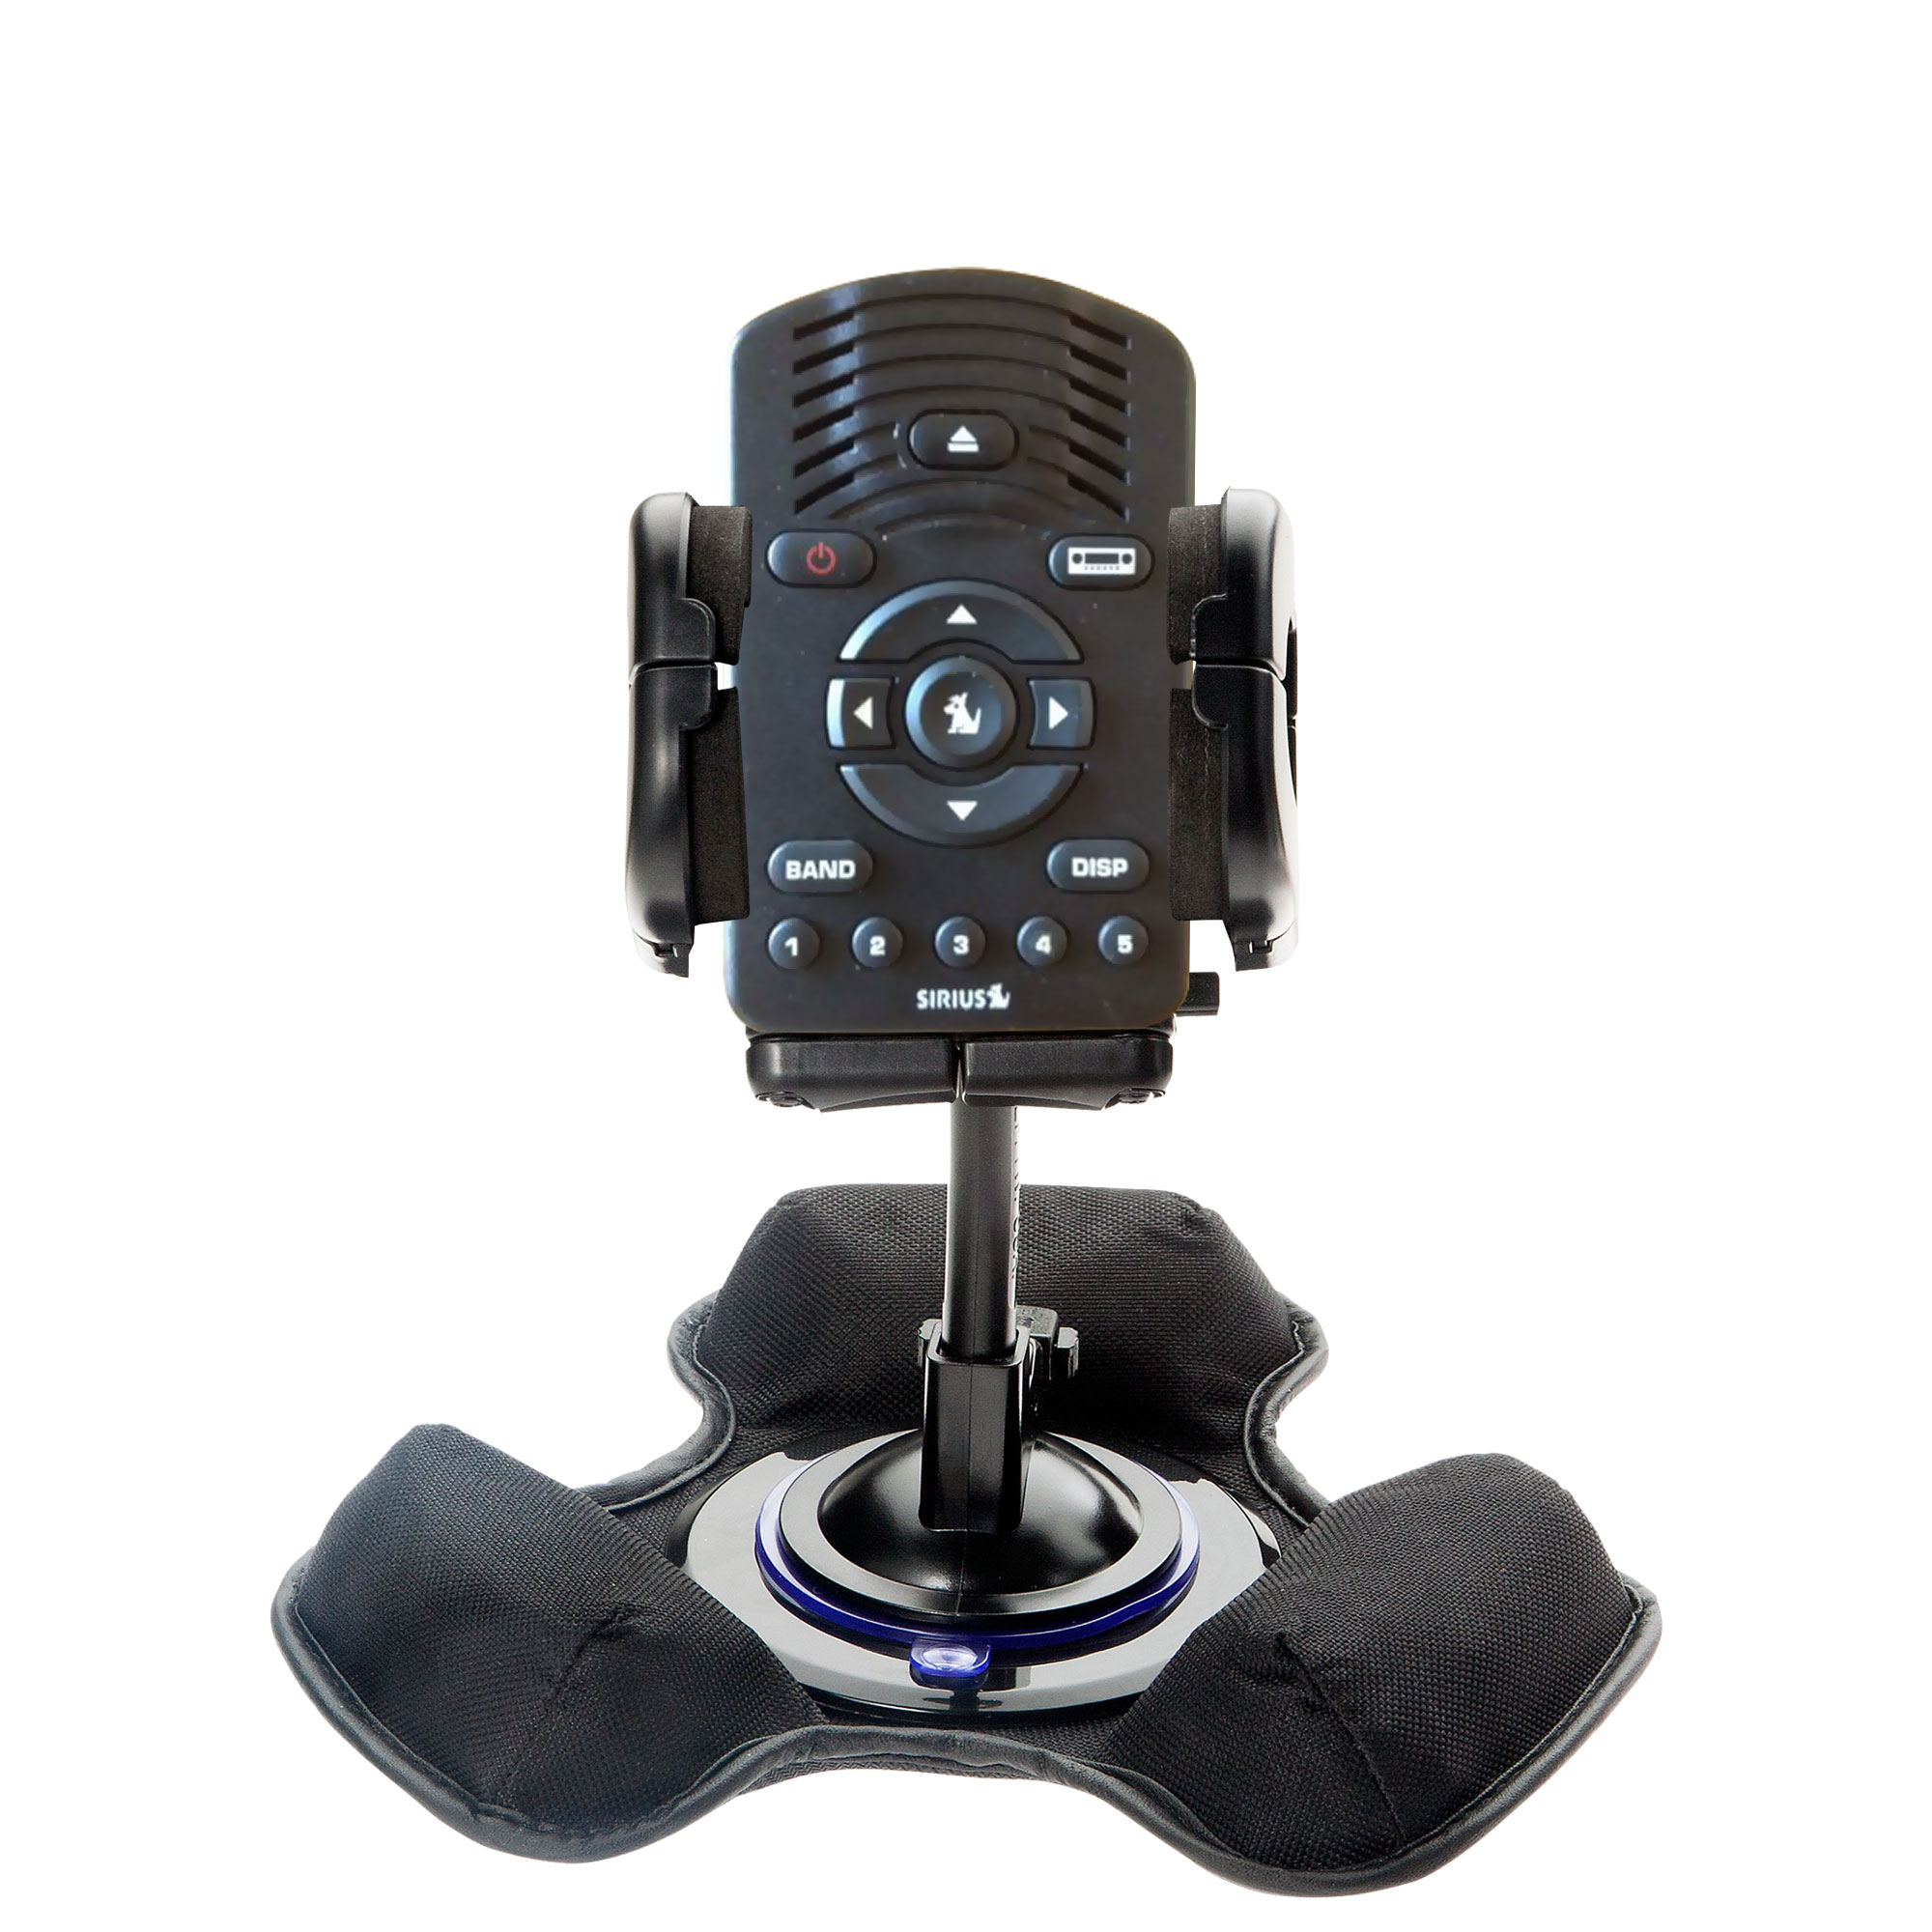 Dash and Windshield Holder compatible with the Sirius One SV1